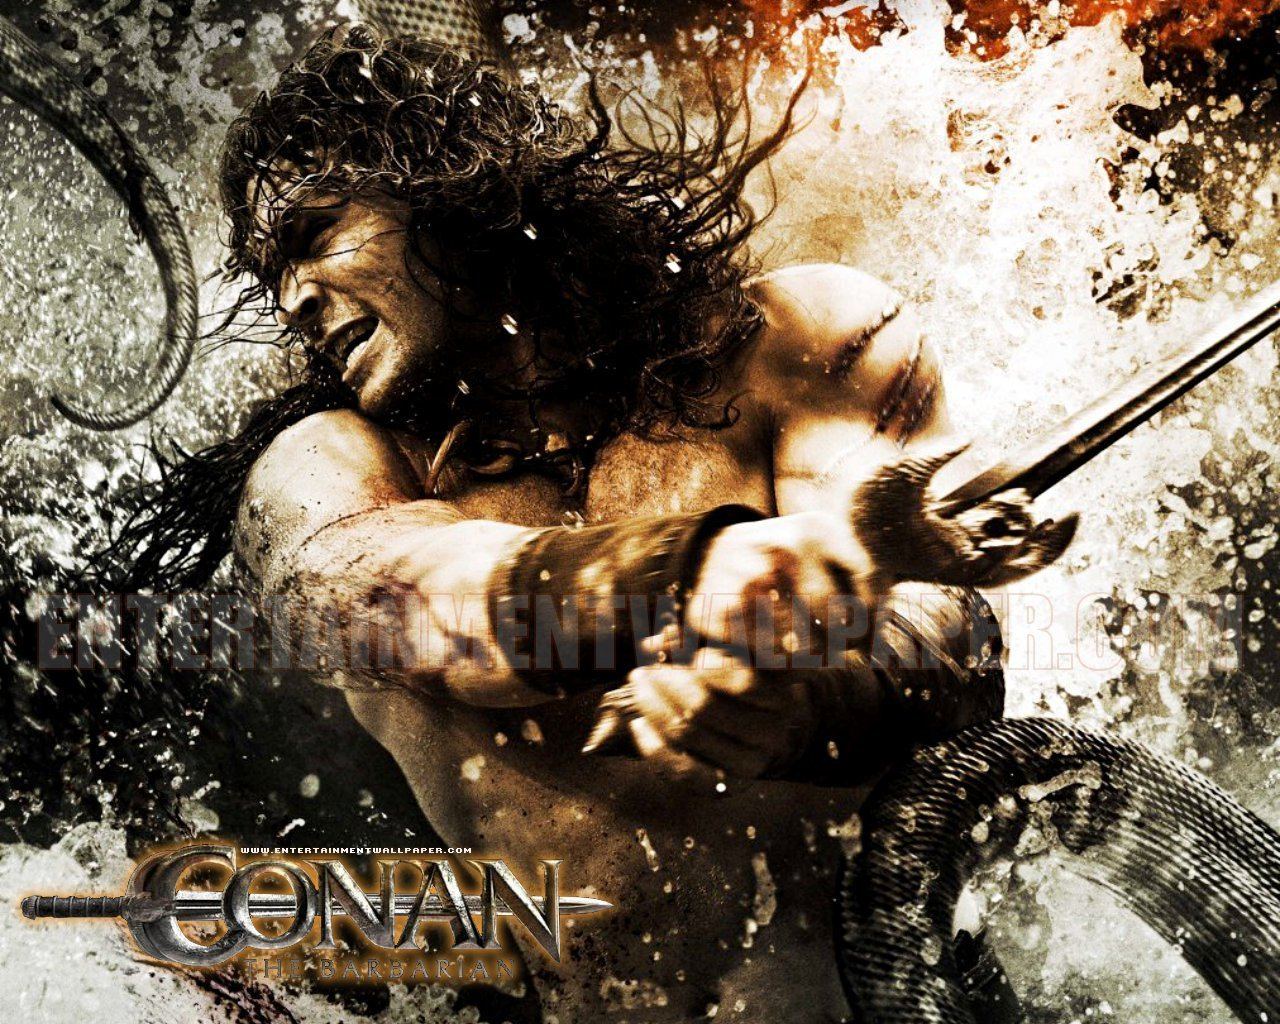 Conan The Barbarian 2011 Conan 1280x1024